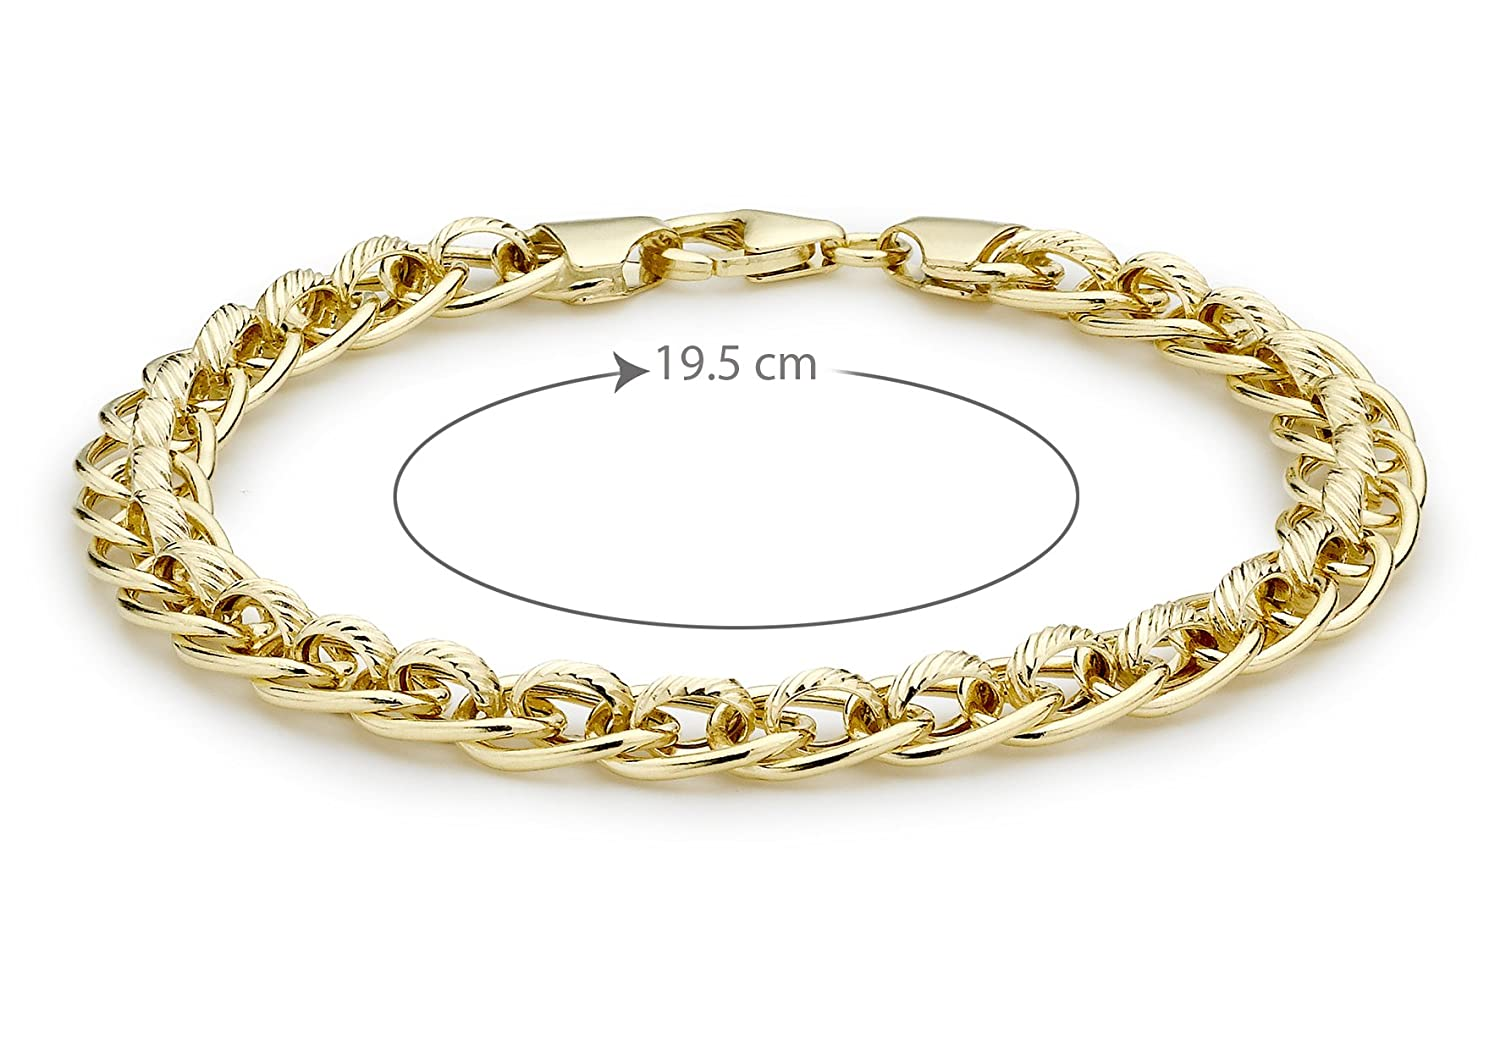 canada bracelet bracelets woman fashion leaves ring bestpriceam finger hollow dp slave gold amazon bangle women ae chain